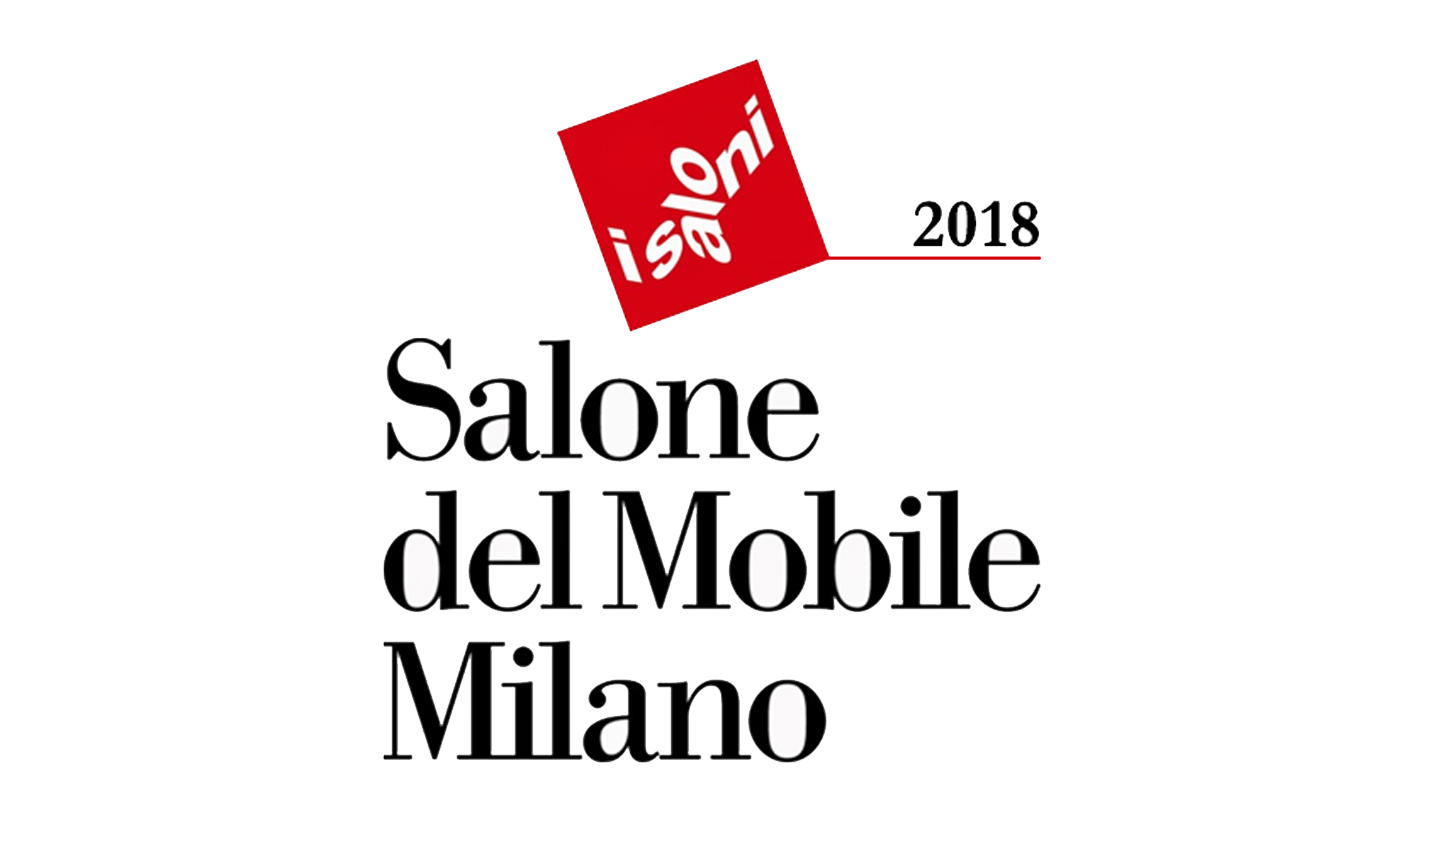 Meet The Winners of the CovetED Awards Presented at iSaloni 2018